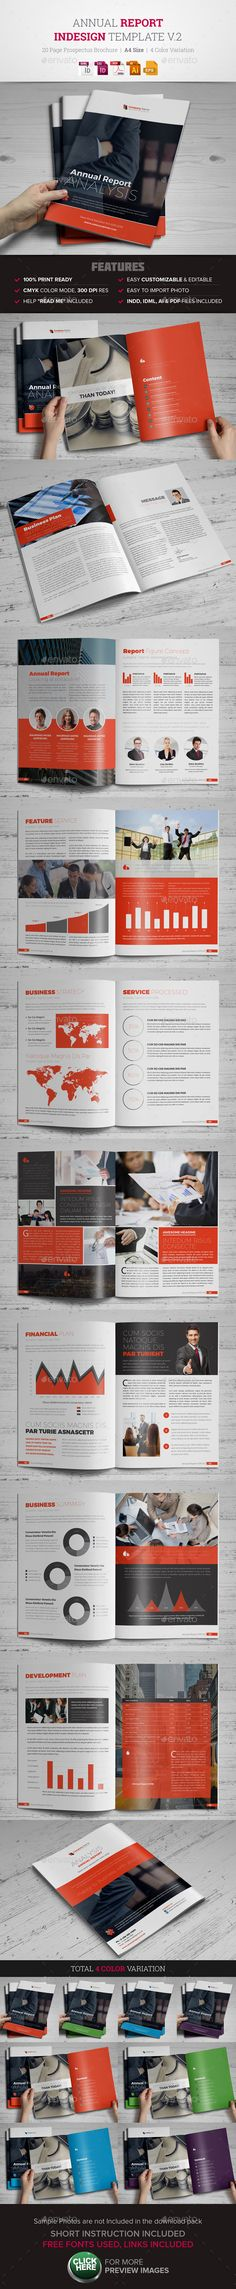 Annual Report InDesign Template v2